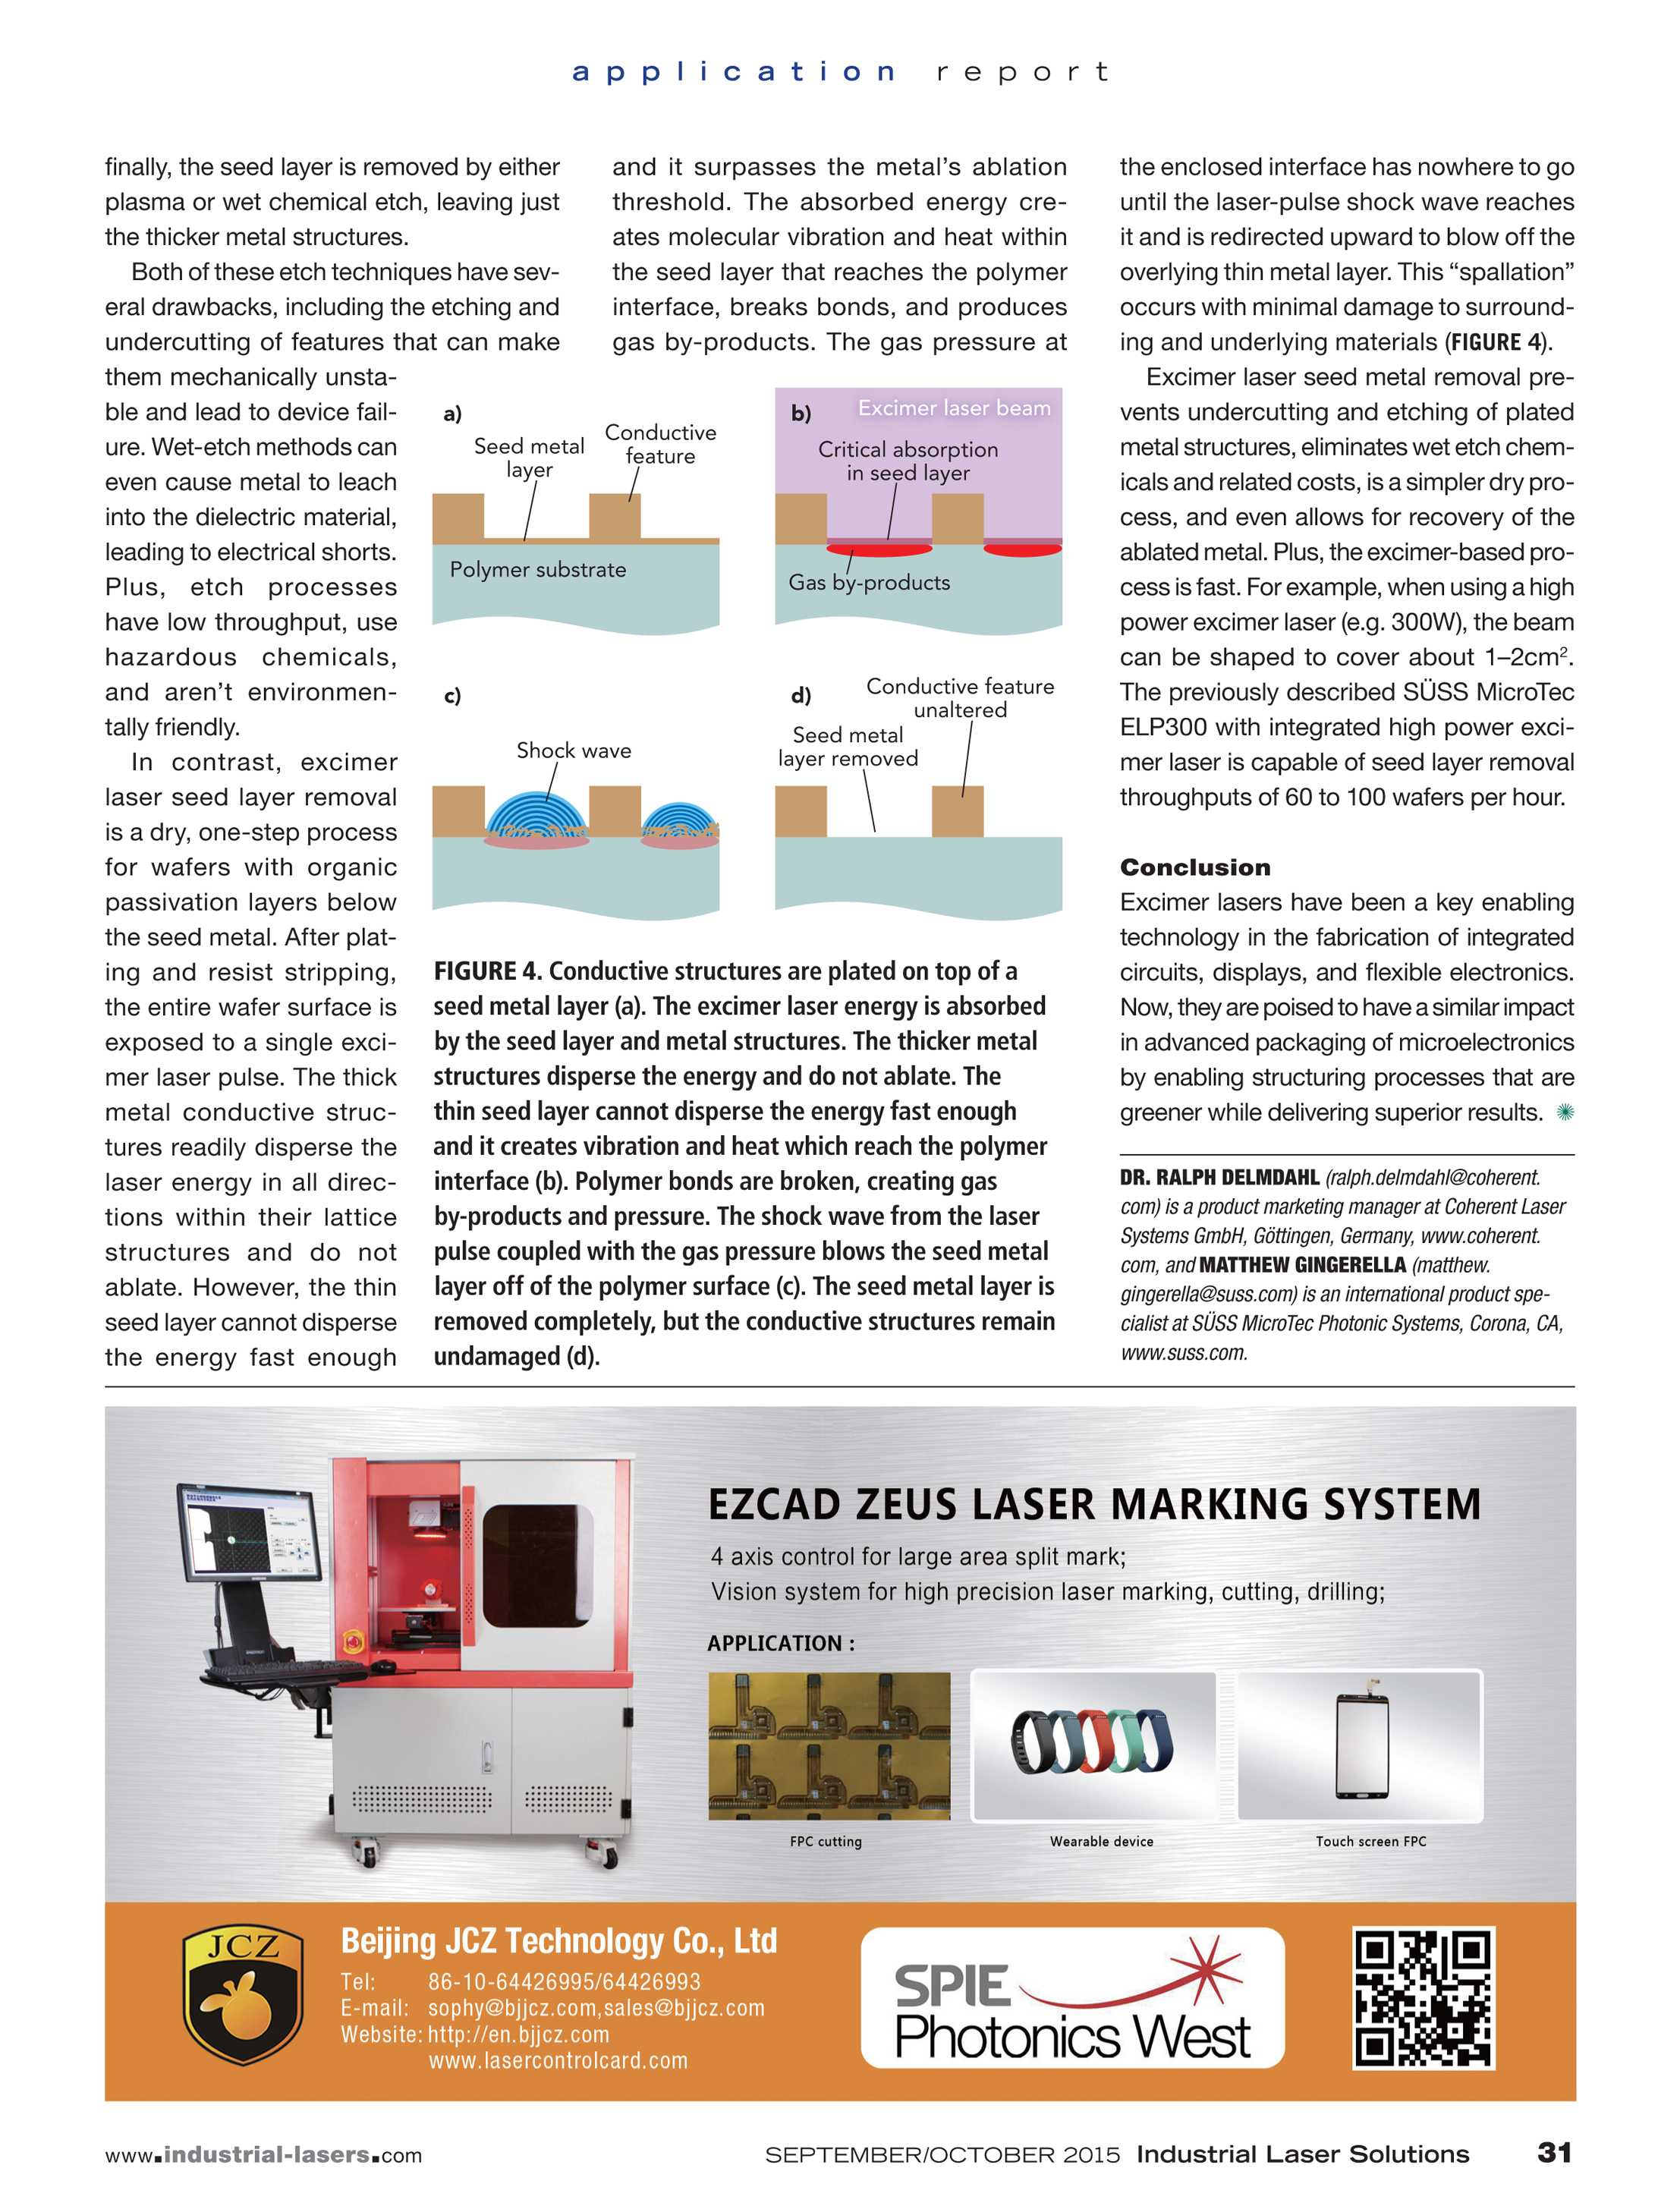 Industrial Laser Solutions - September/October 2015 - page 31